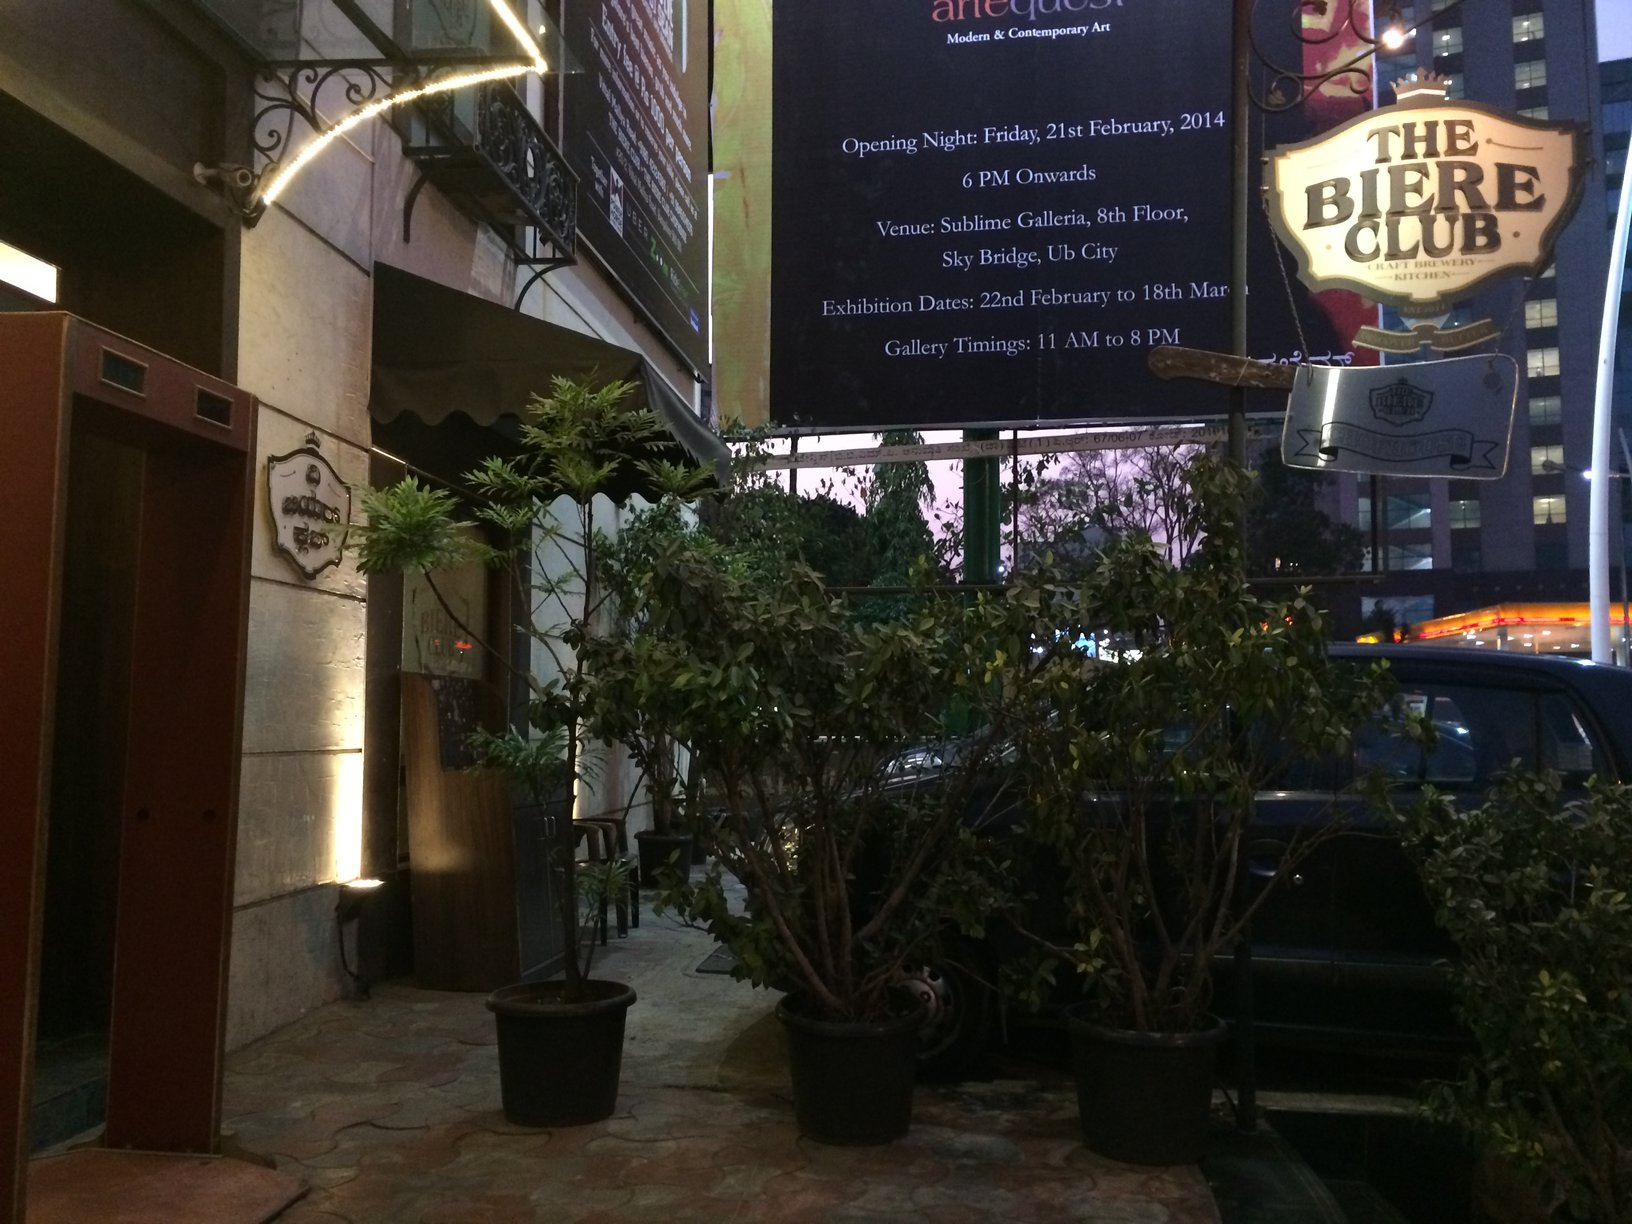 The Biere Club was the home to our heat in Bangalore.